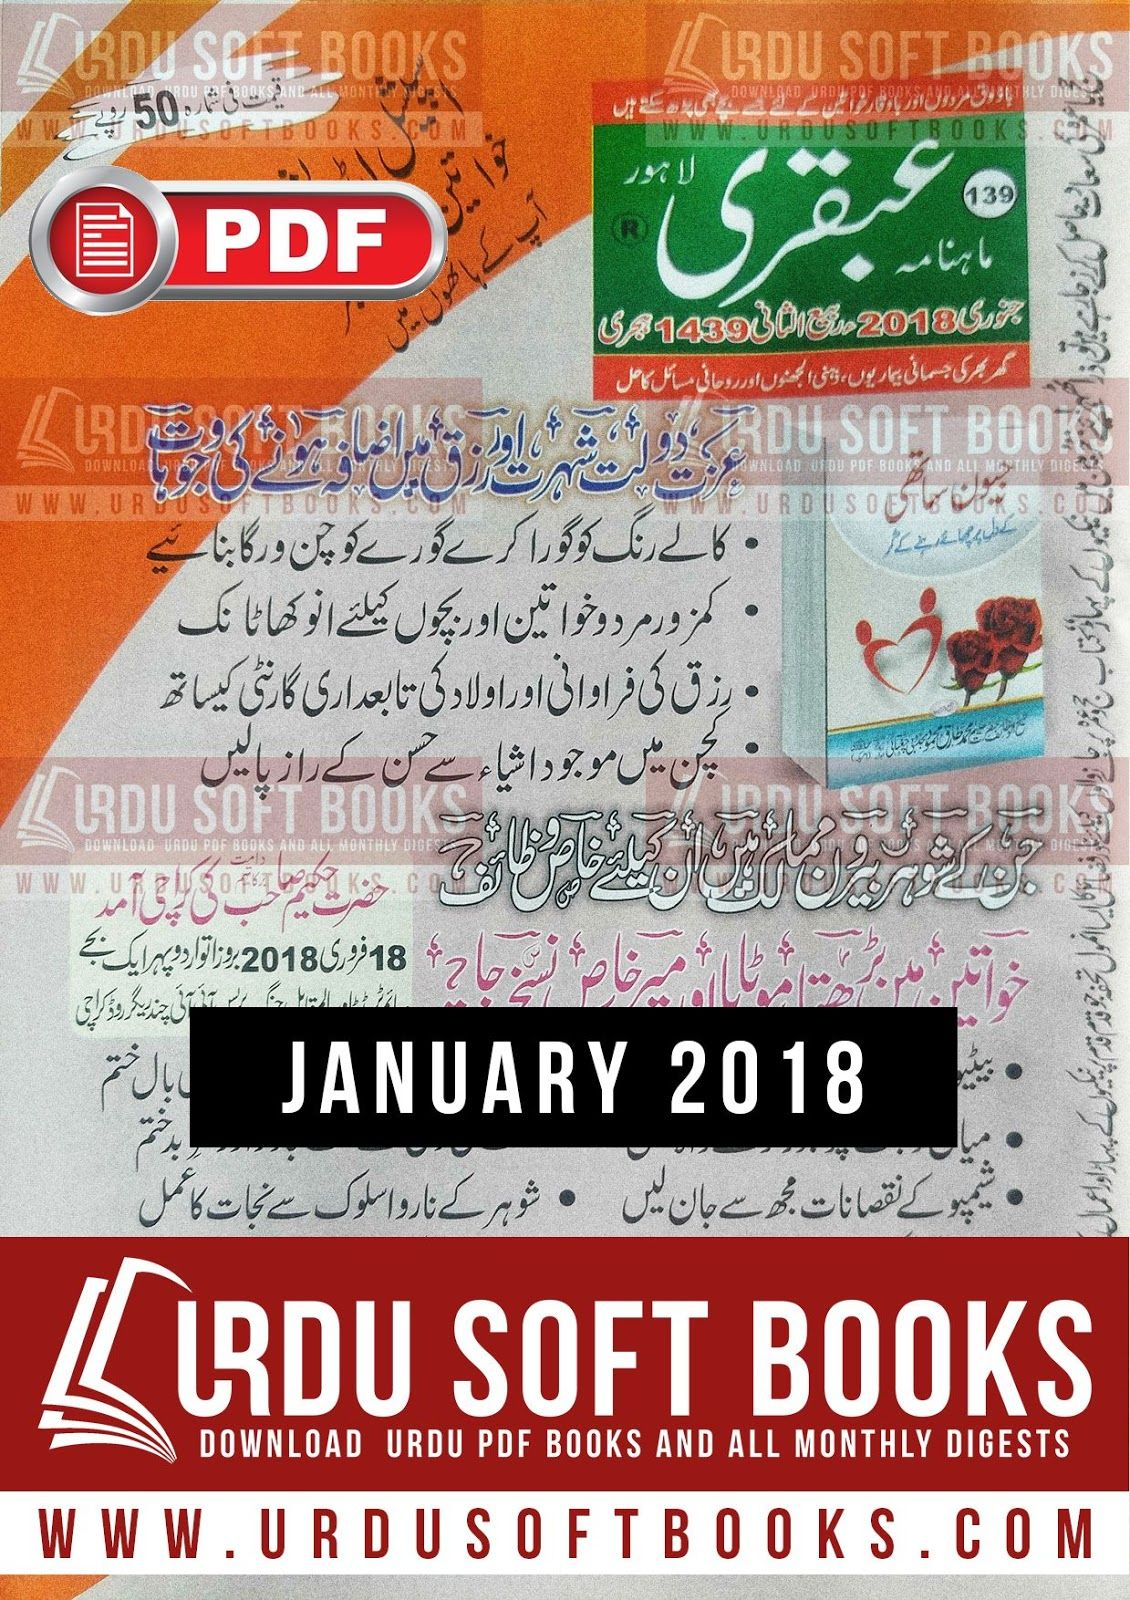 Ubqari Magazine January 2018 Urdu Soft Books Pinterest Pdf